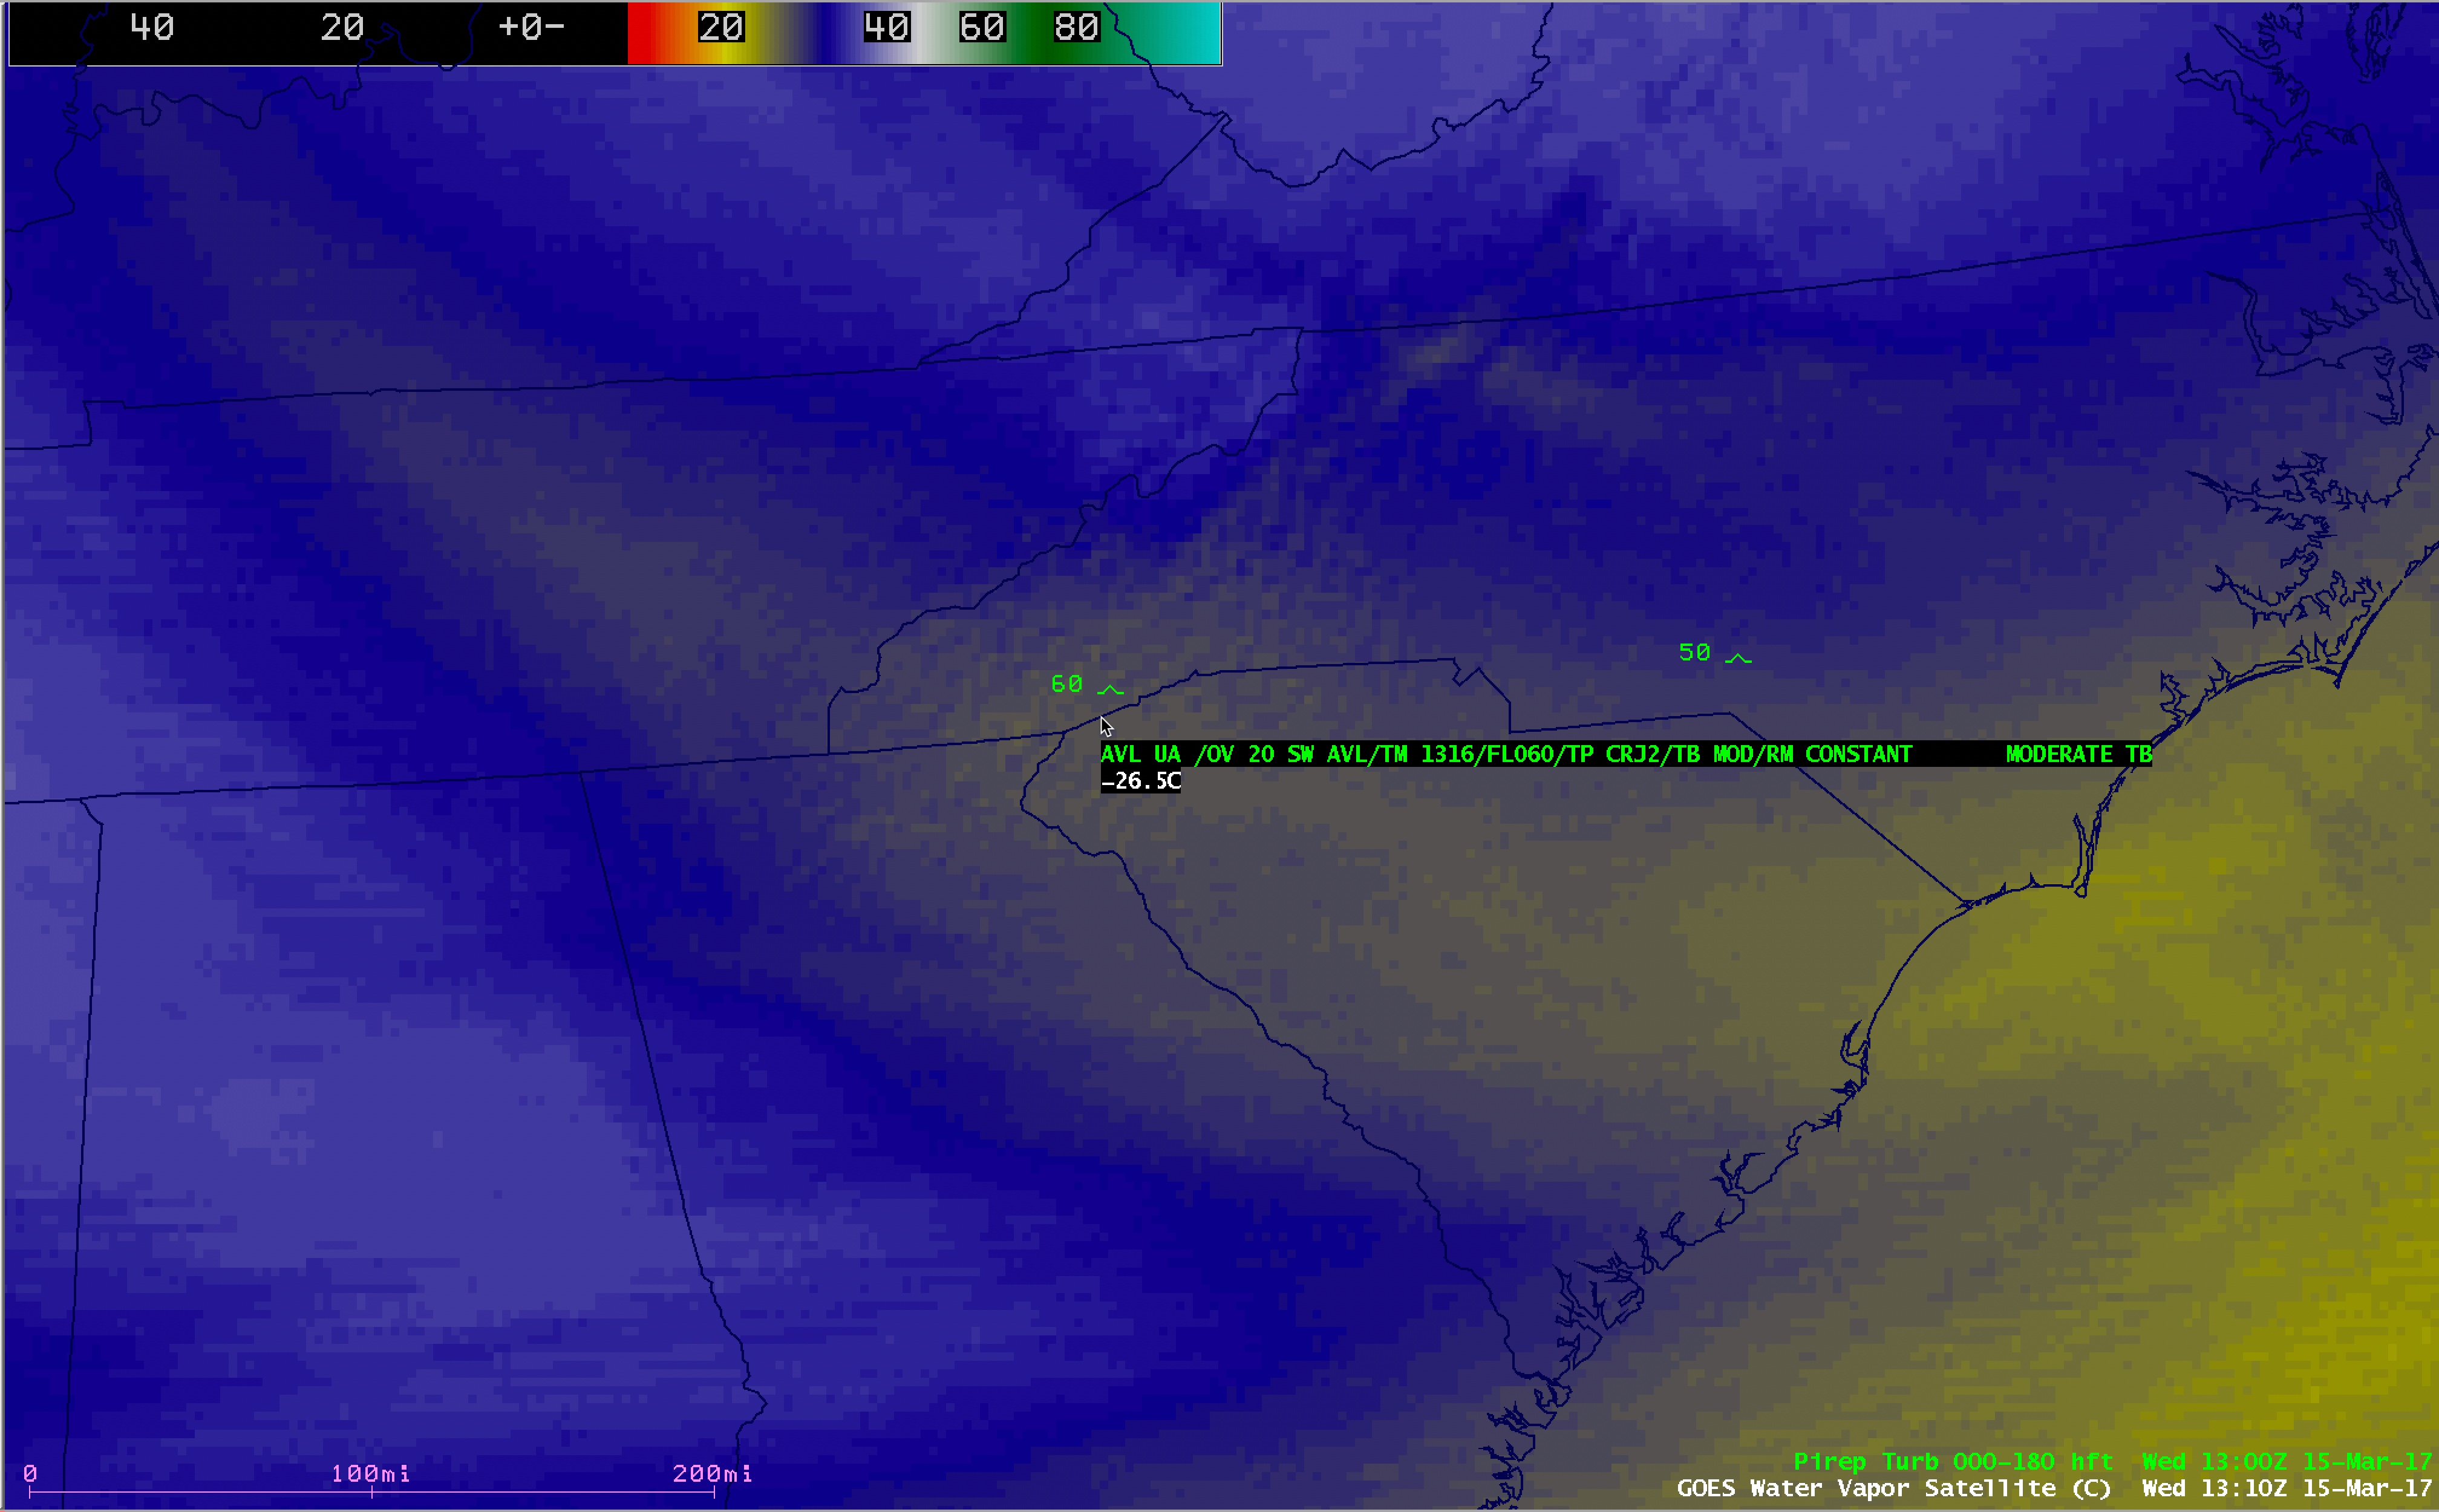 GOES-13 Water Vapor (6.5 µm) image, with pilot report of turbulence [click to enlarge